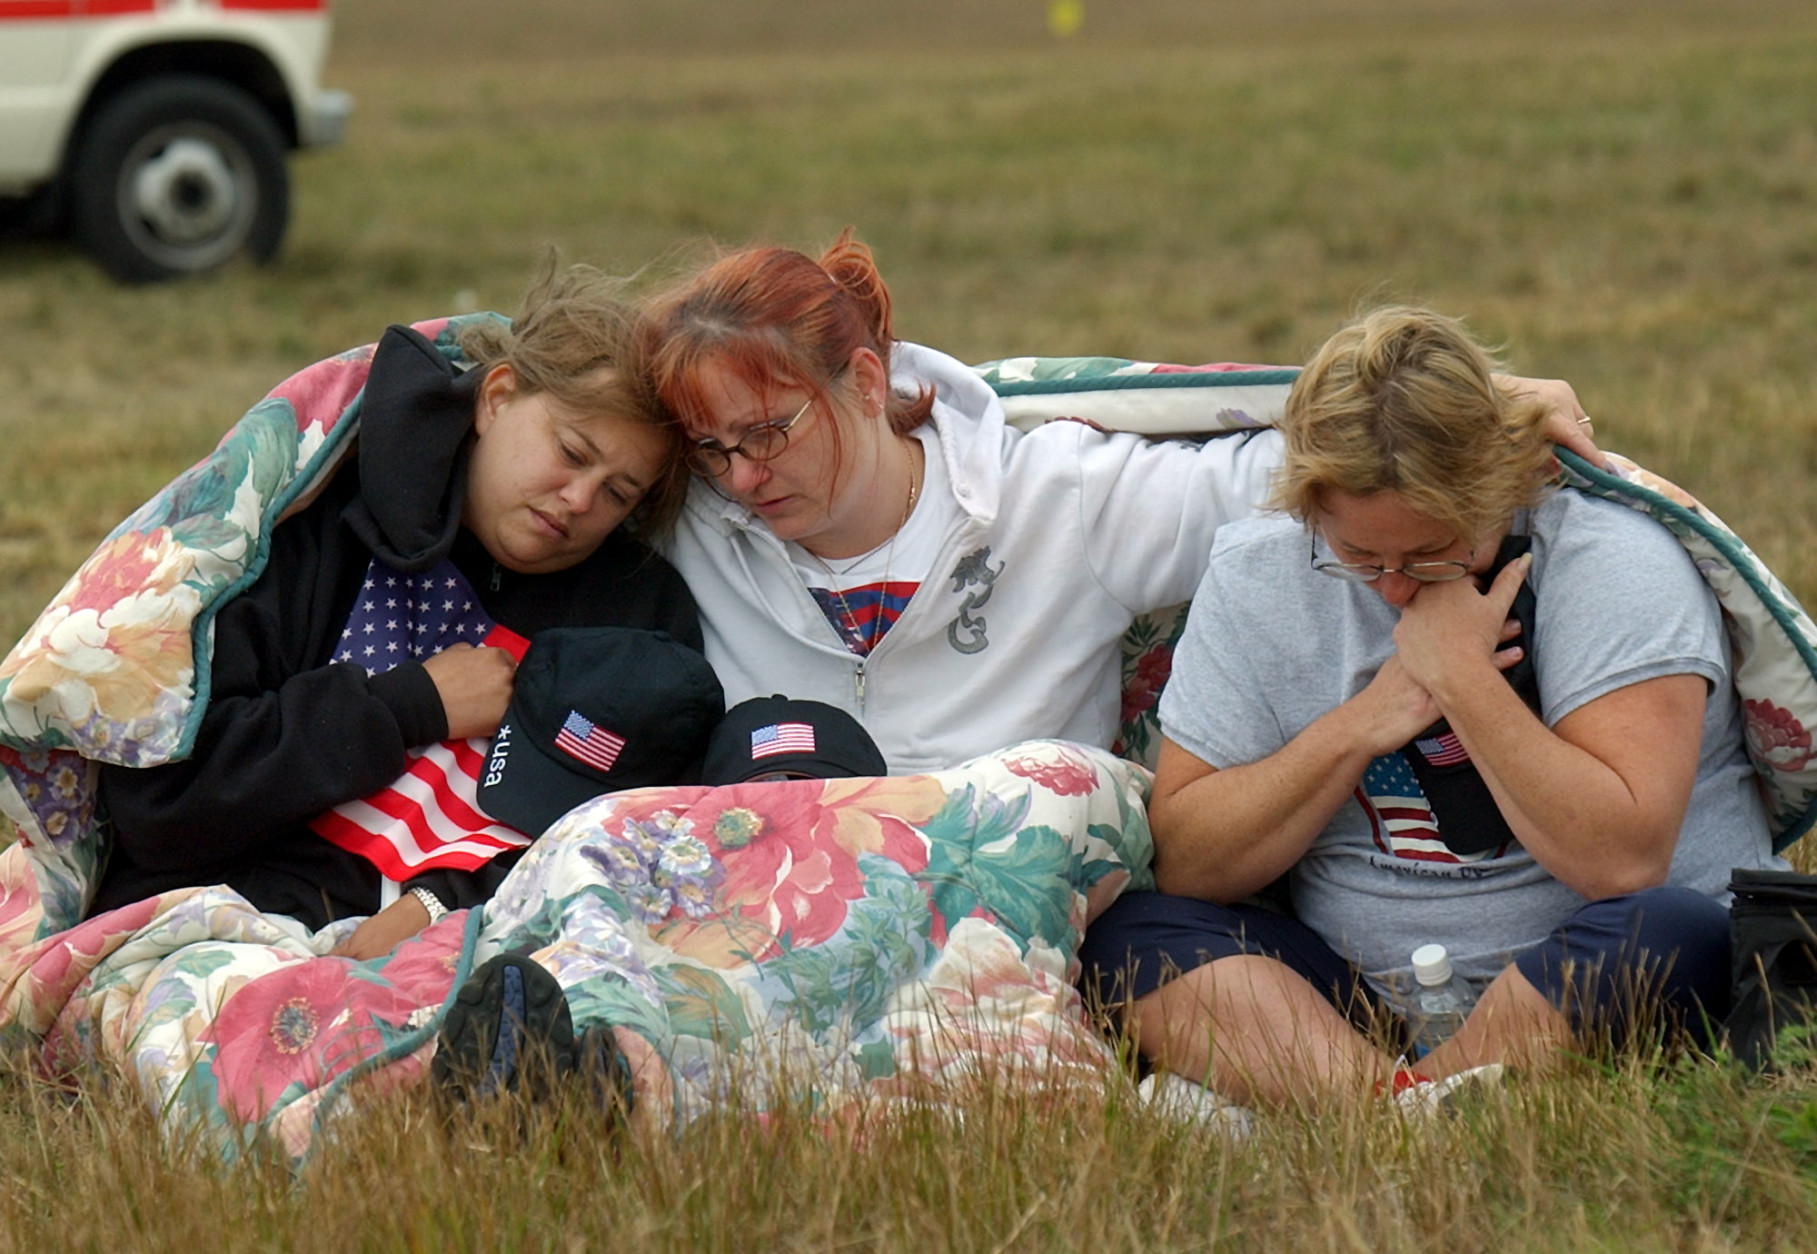 From left, Shannon Barry, Lisa Starr and Michelle Wagner, all of Hershey, Pa., react as they listen to a memorial service for victims of Flight 93 near Shanksville, Pa., Wednesday, Sept. 11, 2002. President Bush will lay a wreath at the crash site later in the day to mark the anniversary of the terrorist attacks. (AP Photo/Julie Jacobson)